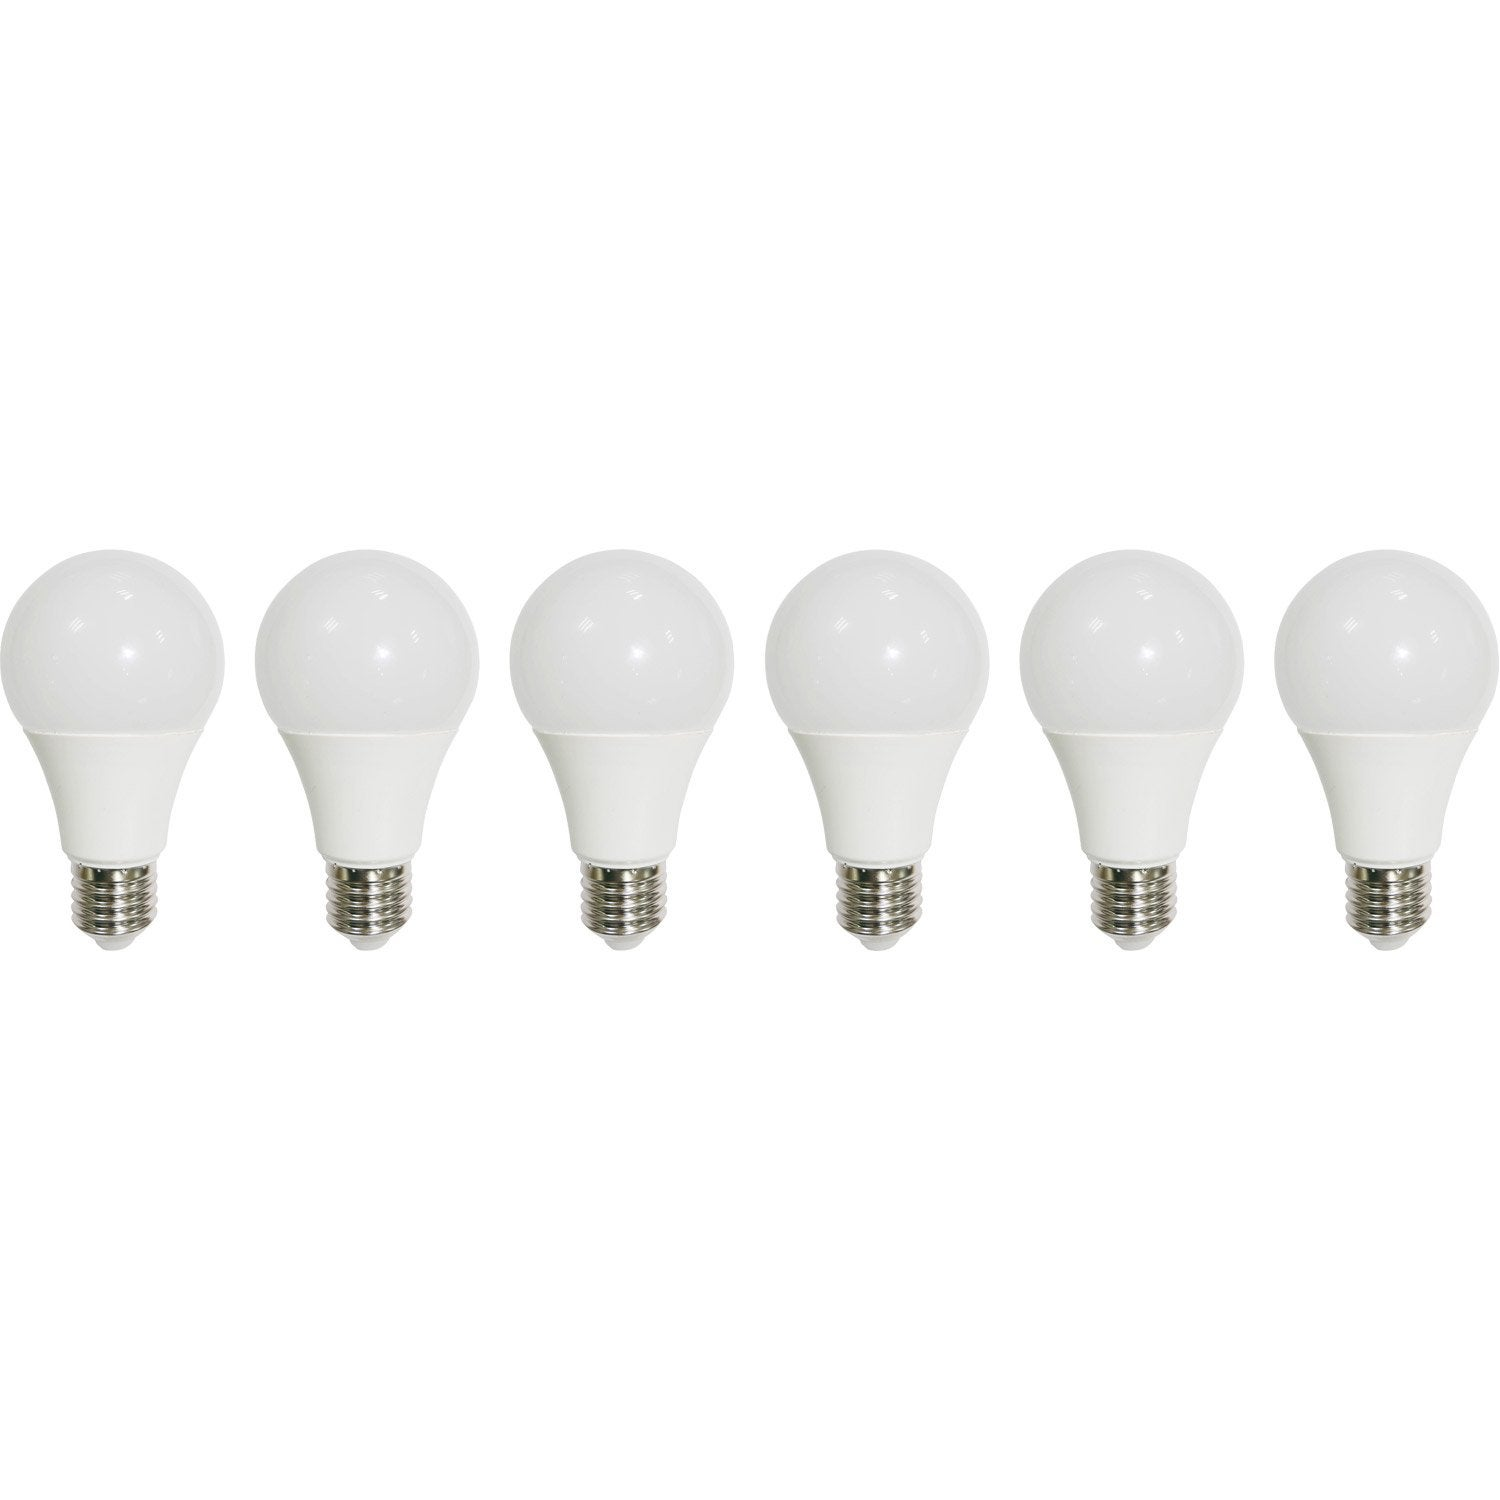 Lot 150° Standards Ampoules 60w3000k 9w806lméquiv Led Lexman 6 E27 De zUVGqSMp